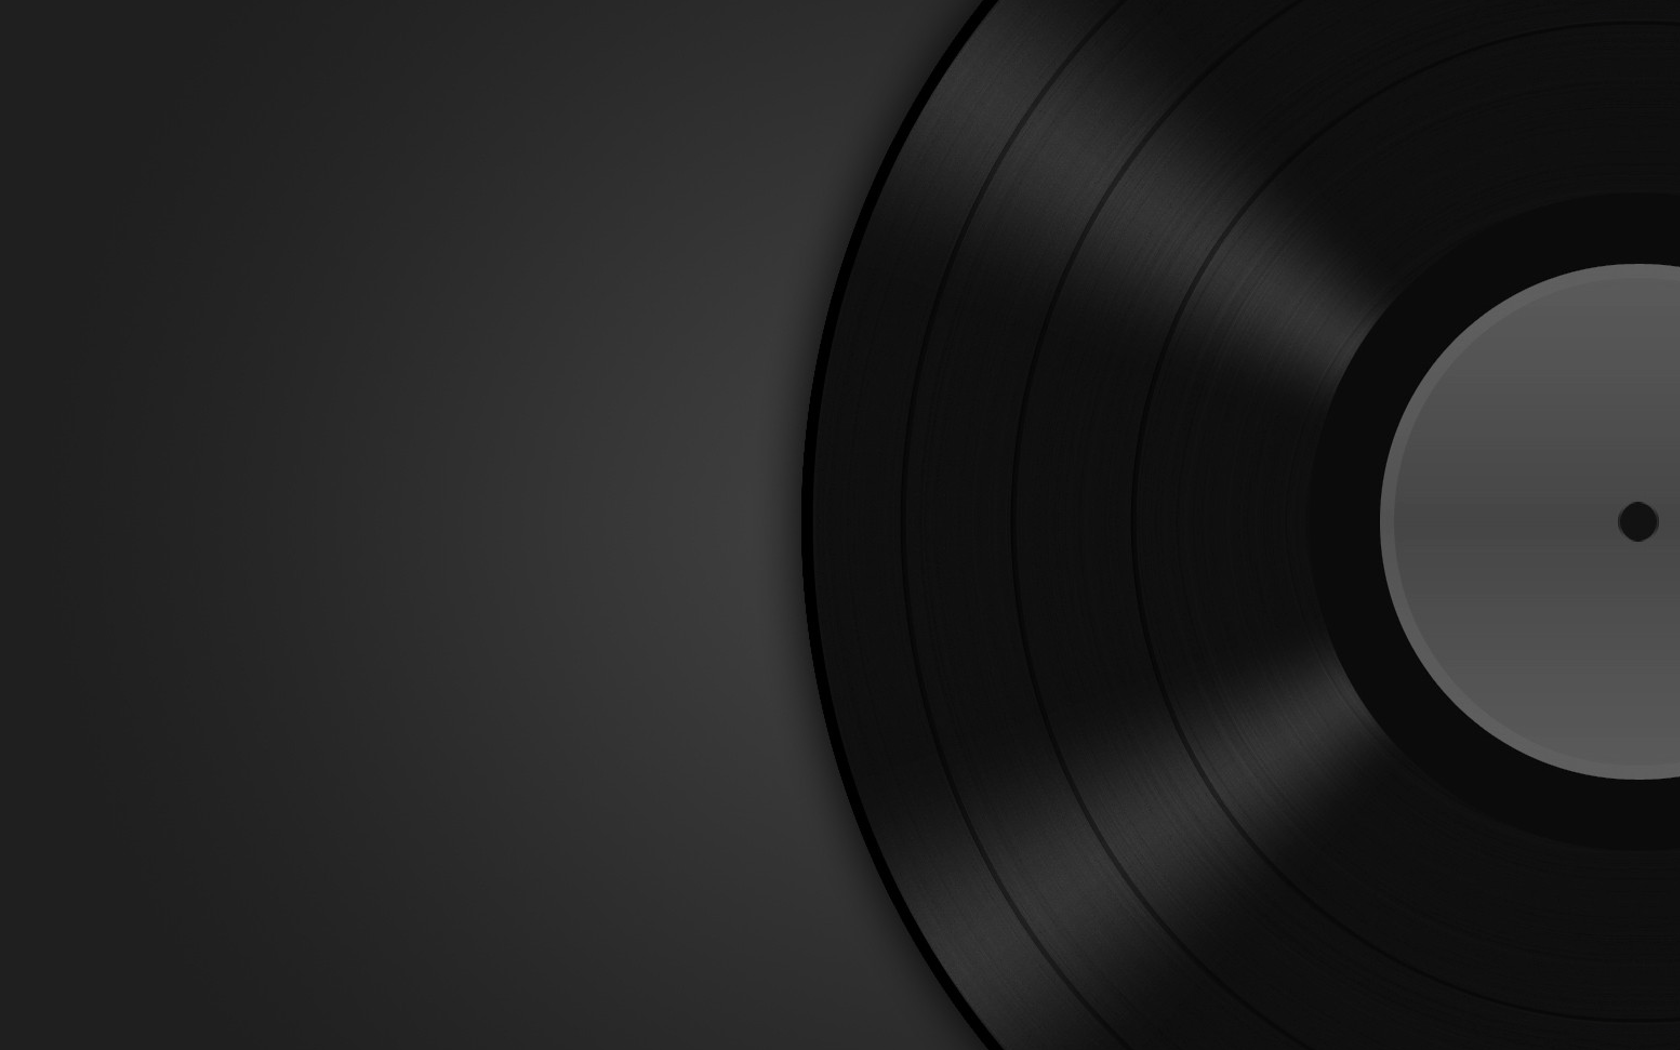 1680x1050 Vinyl Wallpaper and Background Image | 1680x1050 | ID:598655 ...